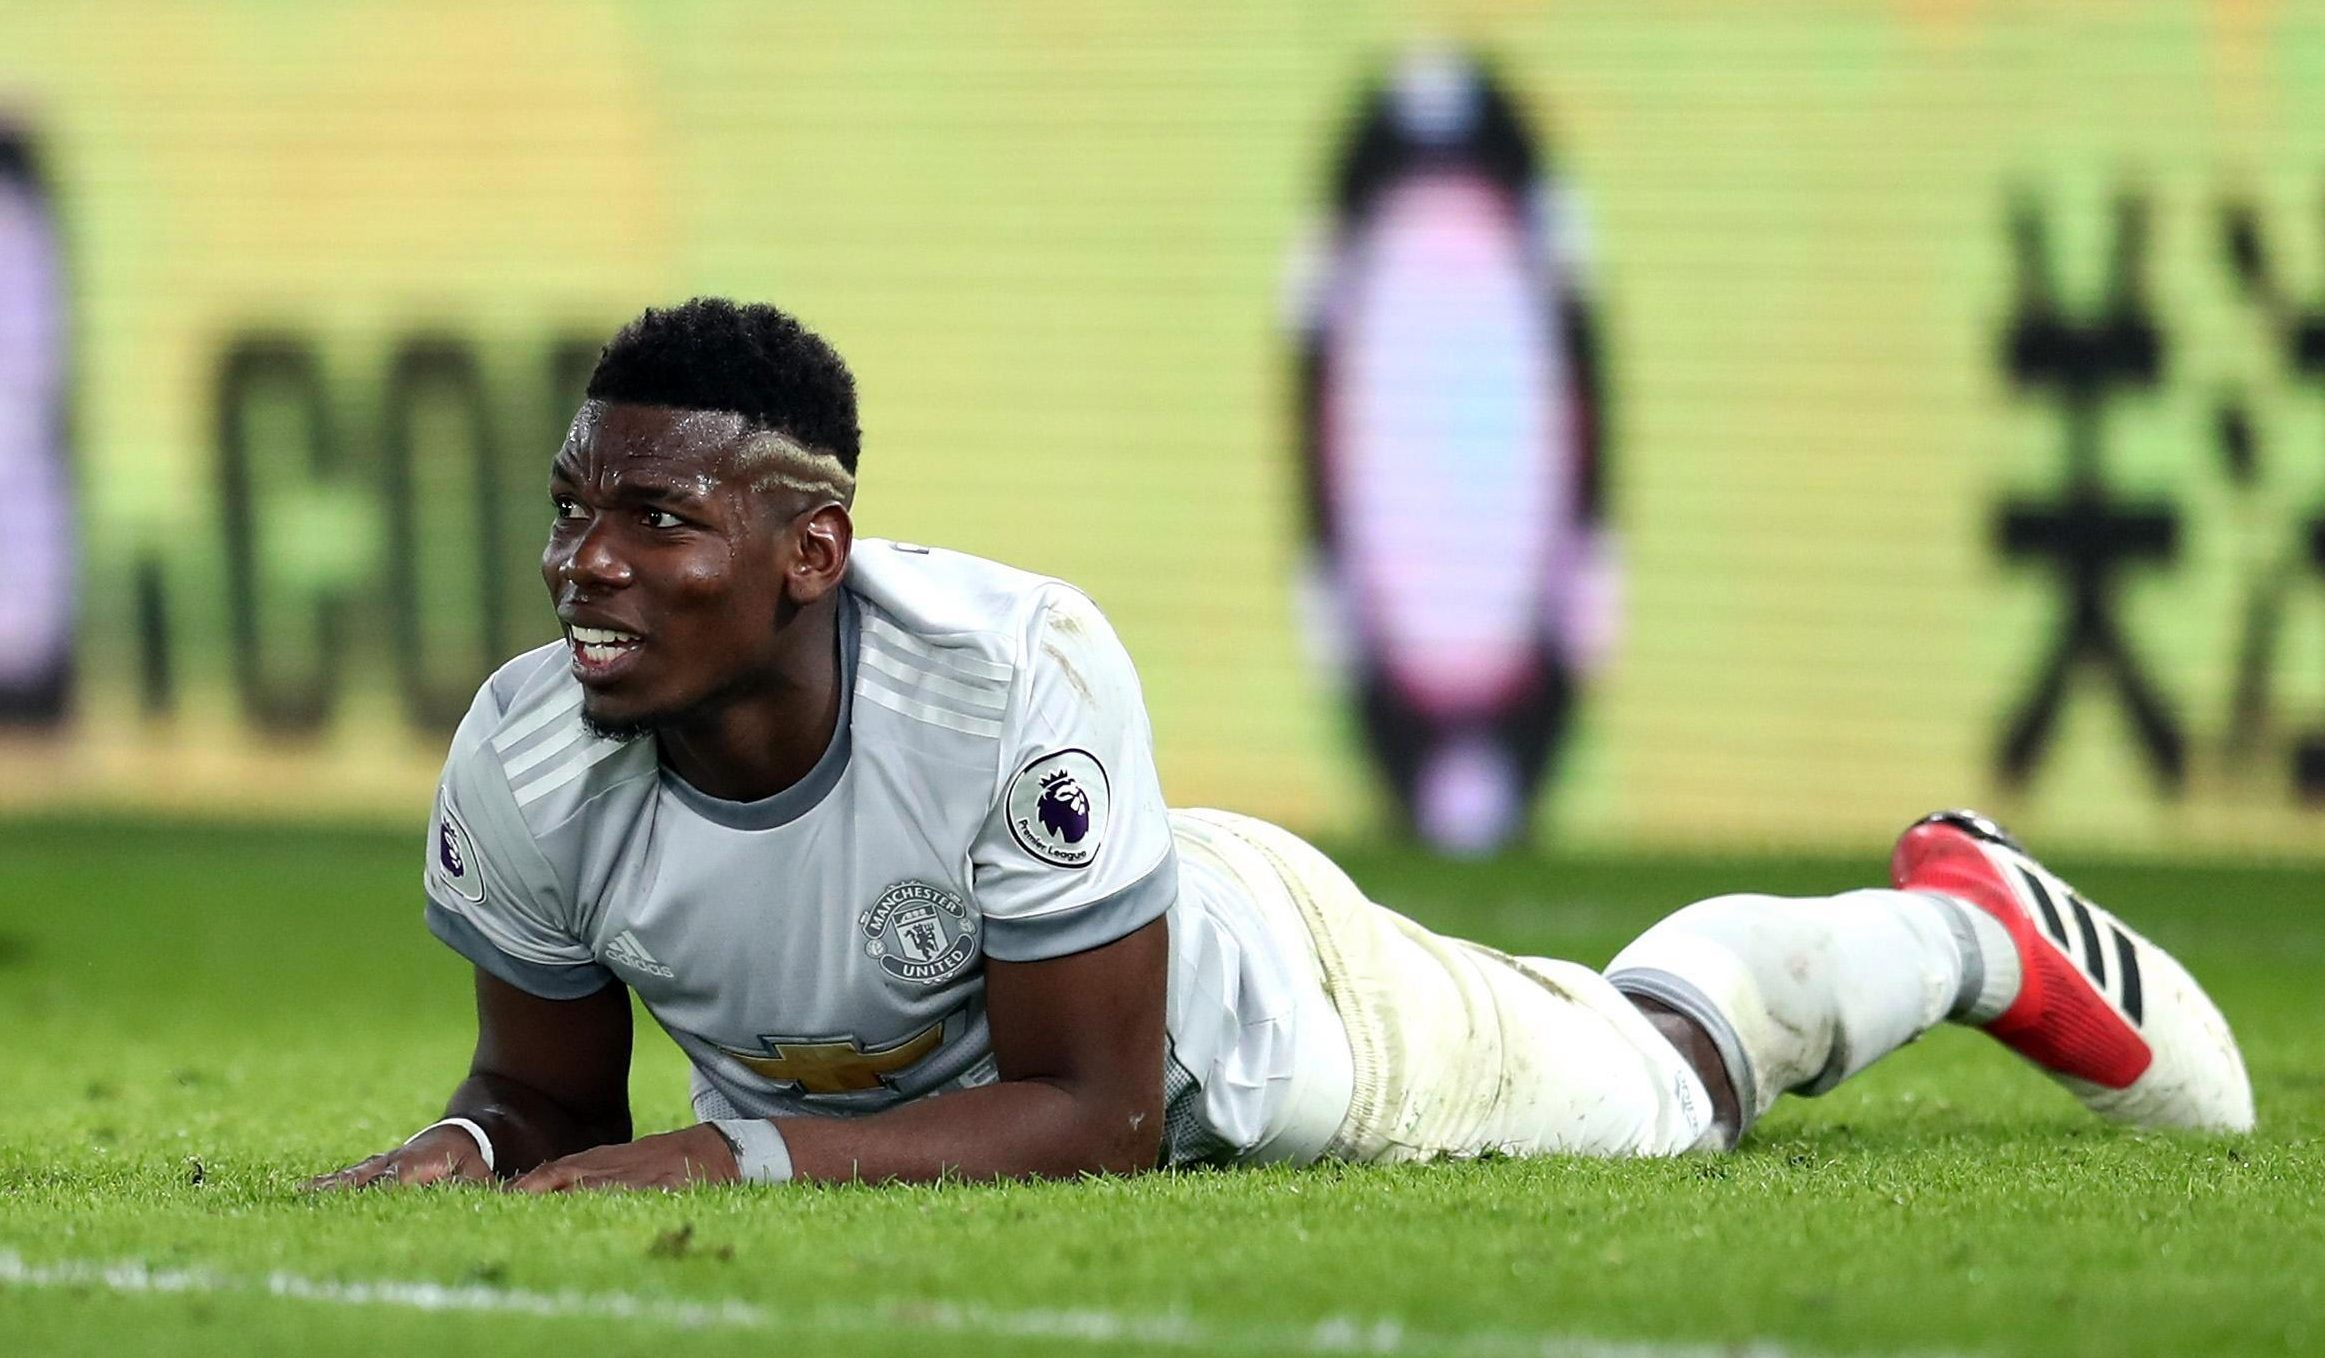 Manchester United midfielder Paul Pogba gives Jose Mourinho huge injury scare with gashed leg